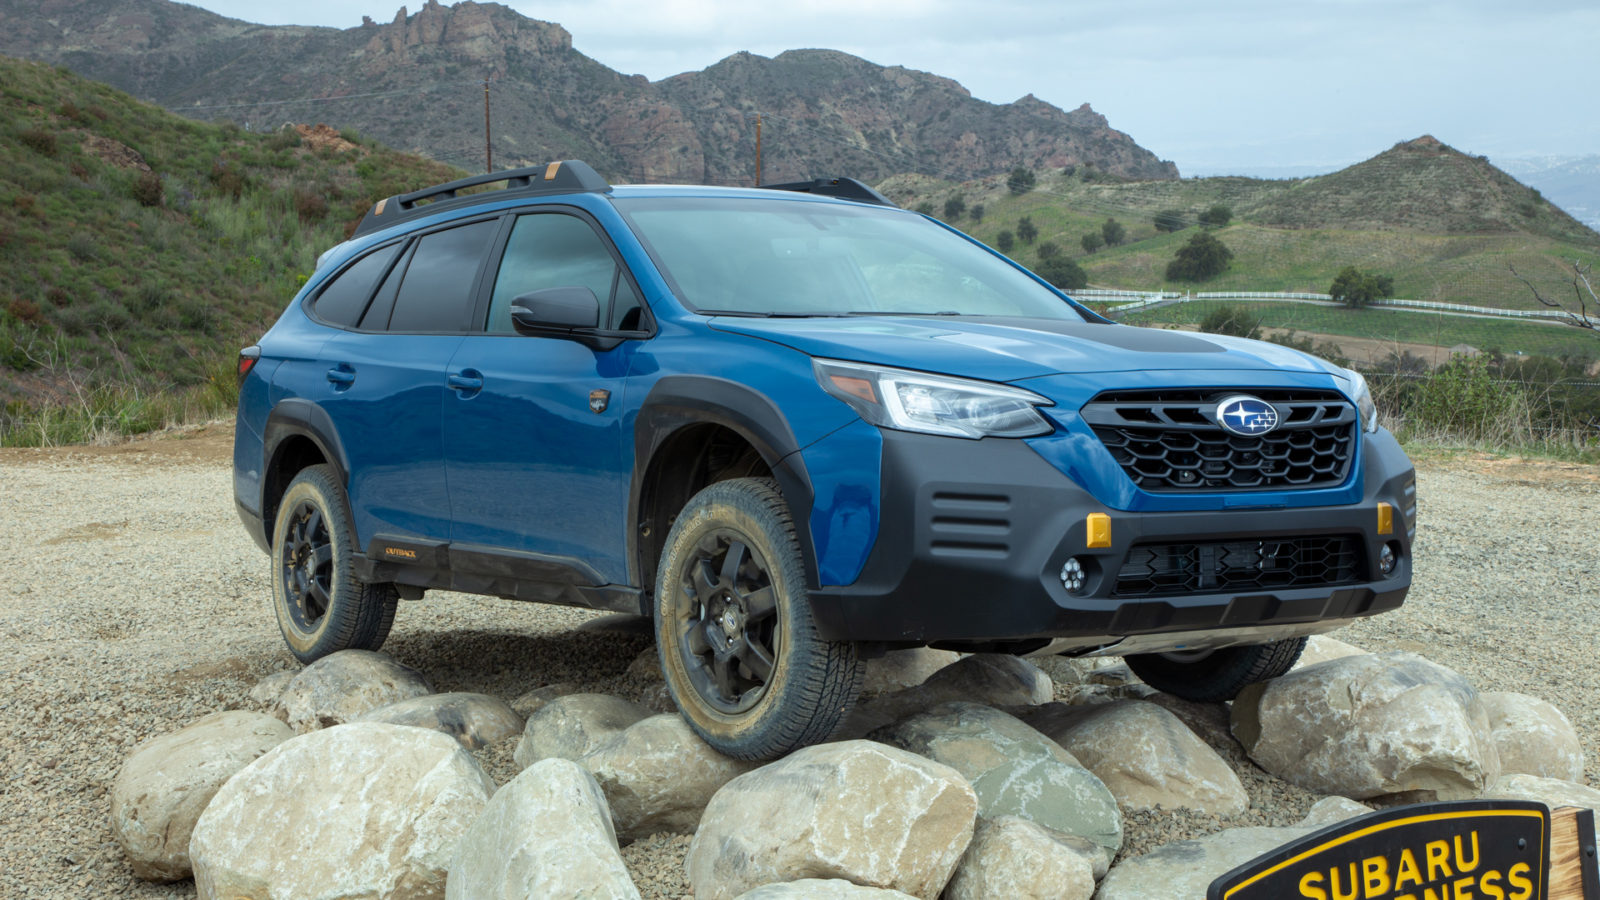 first-drive:-2022-subaru-outback-wilderness-pushes-further-into-the-wild